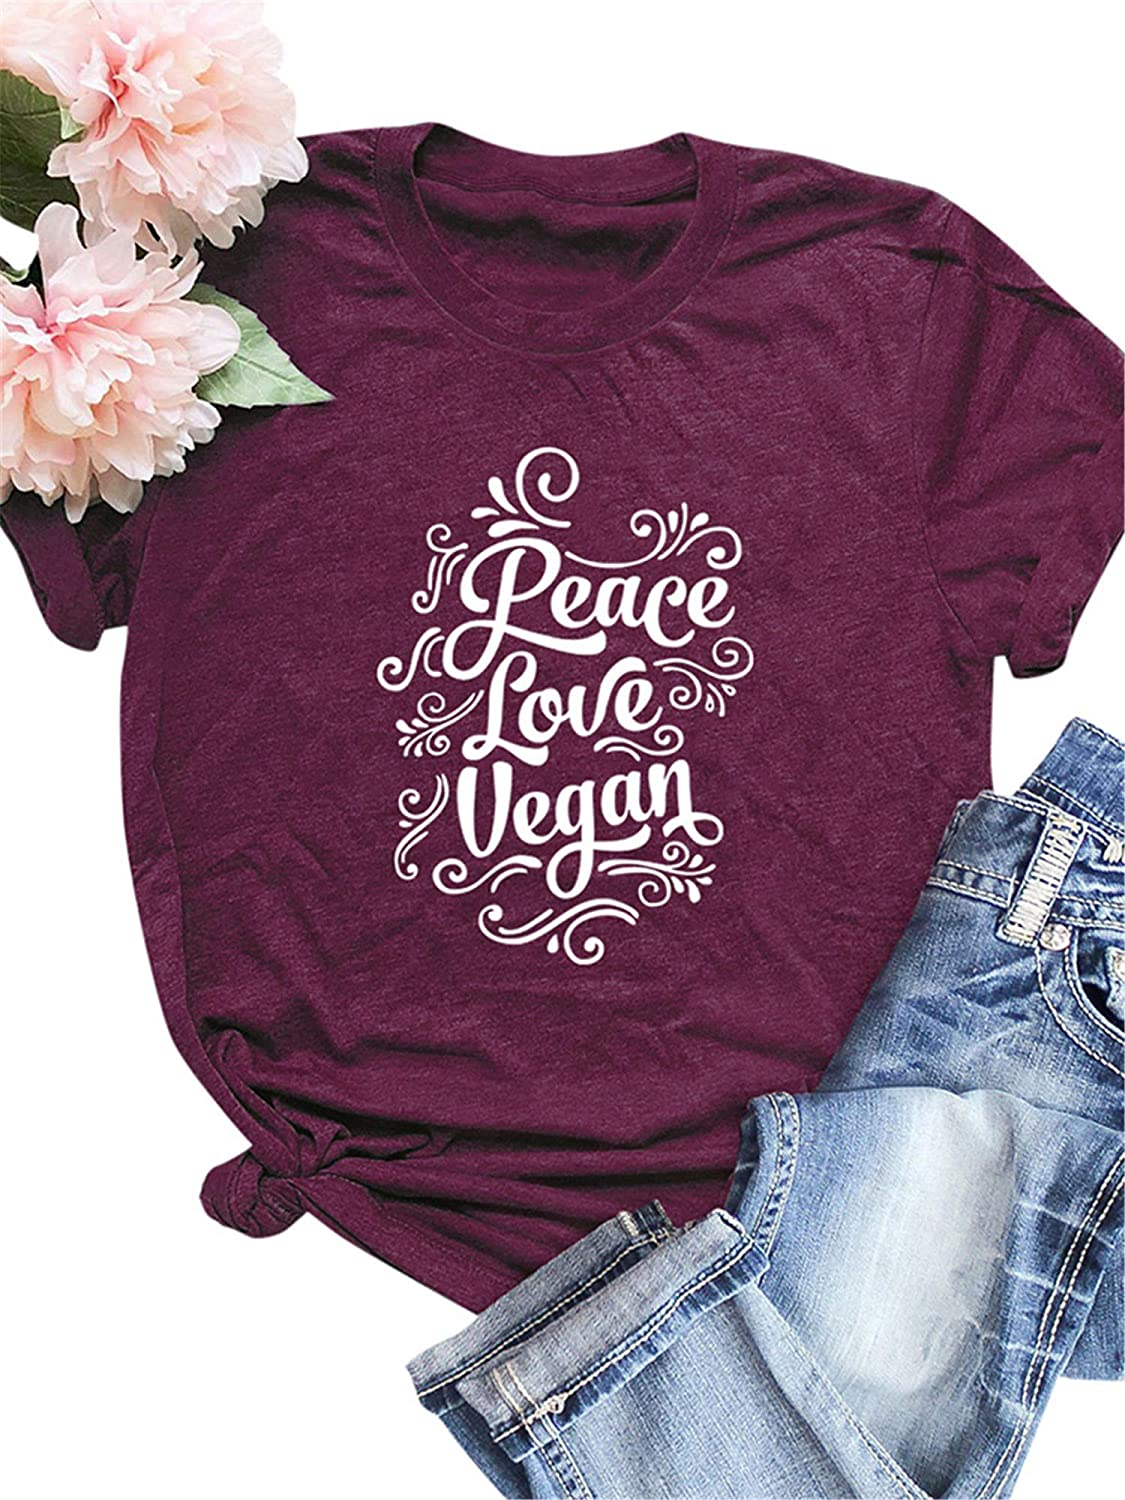 Festnight Women Funny T-Shirt Casual Cotton Shirt Peace Love Vegan Print Short Sleeve Tee Tops O-Neck Loose Plus Size Blouse